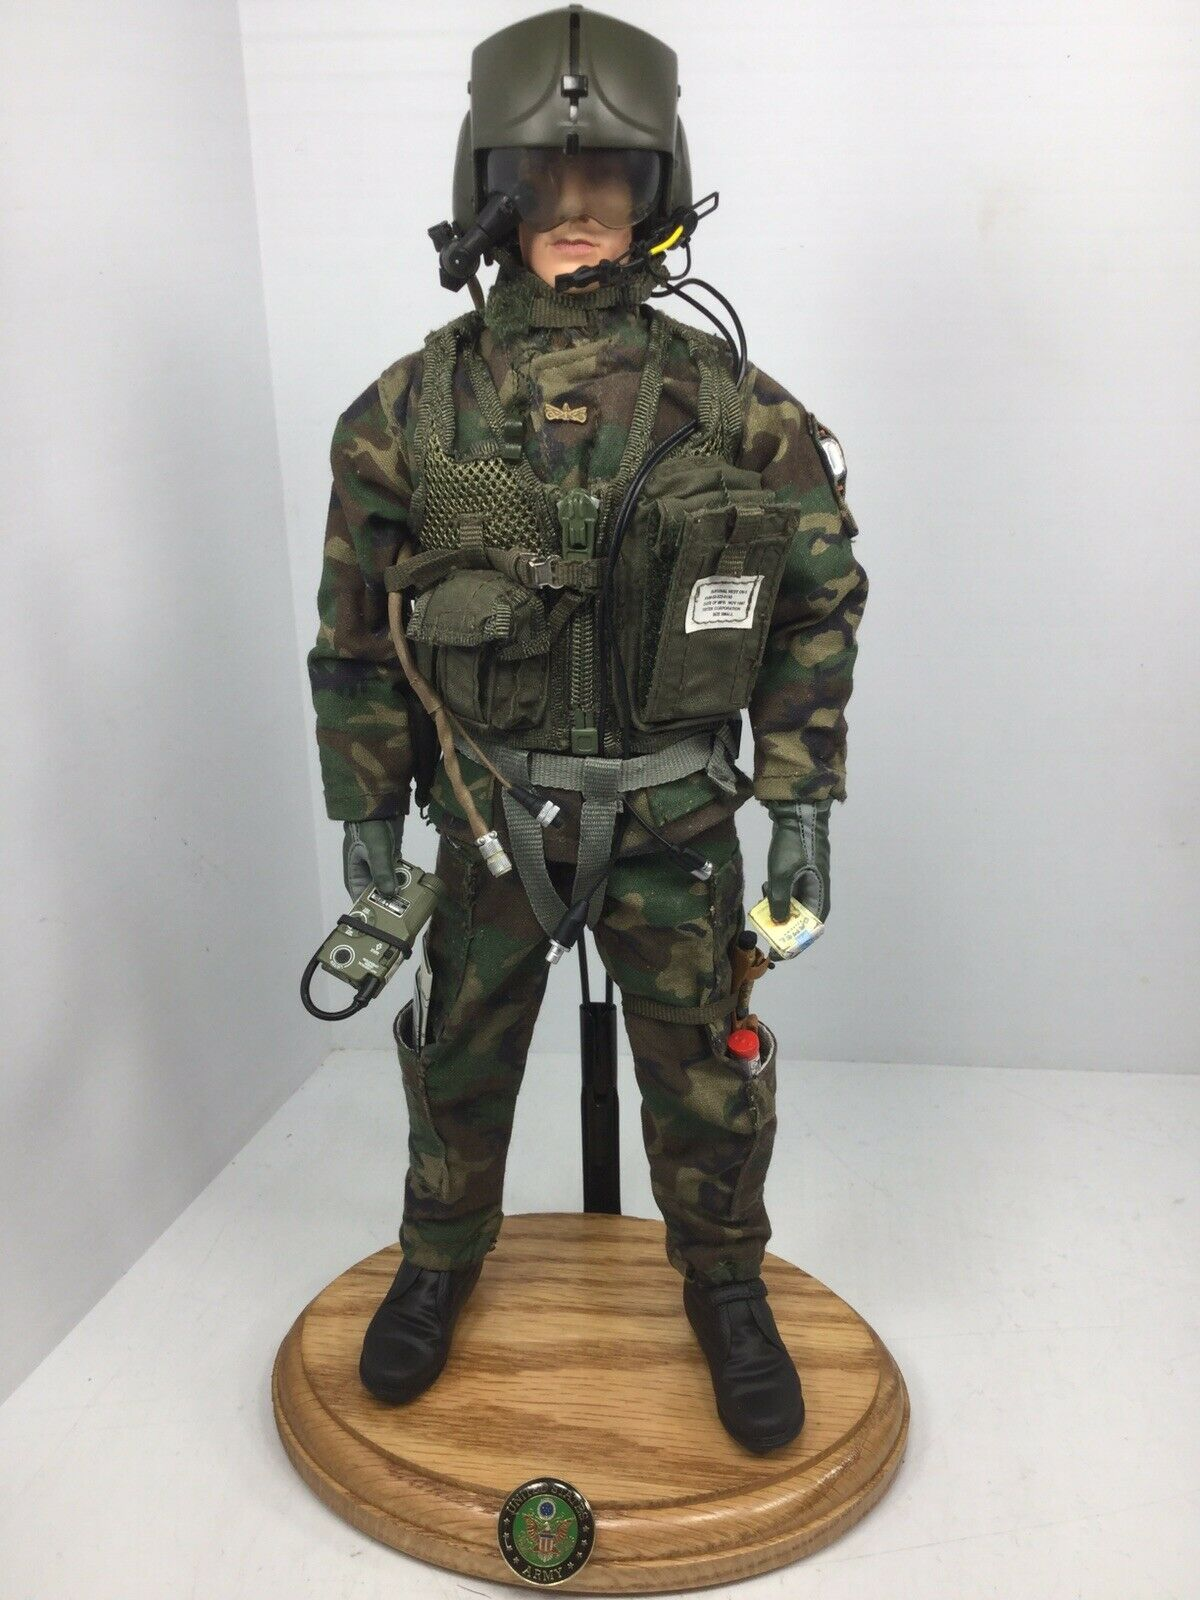 1 6 BBI US ARMY AH-64 APACHE MODERN ATTACK HELICOPTER PILOT +STAND DRAGON DID